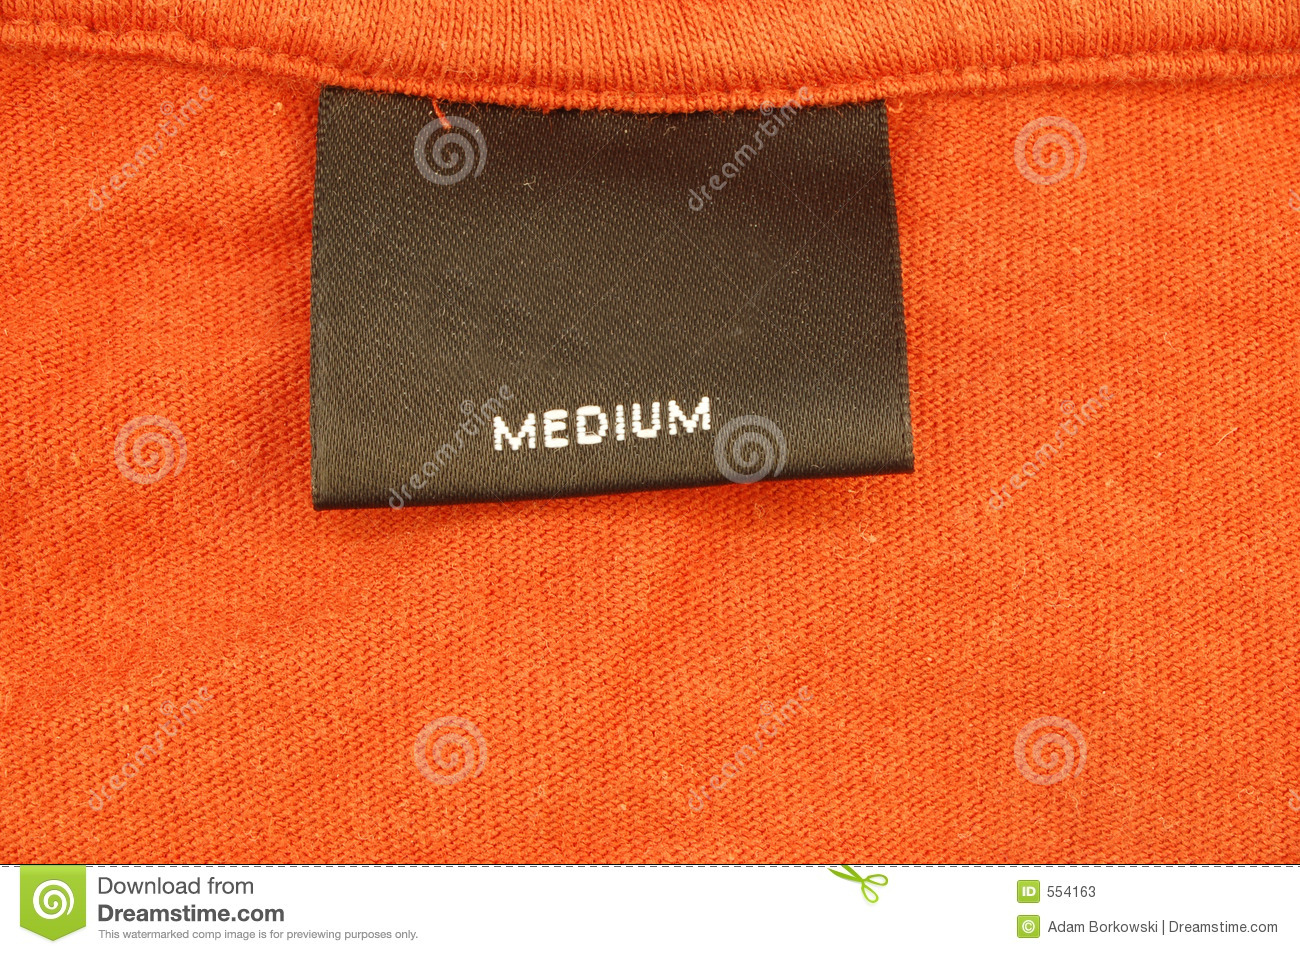 Http Www Dreamstime Com Stock Photos Medium L Size Shirt 2 Image554163